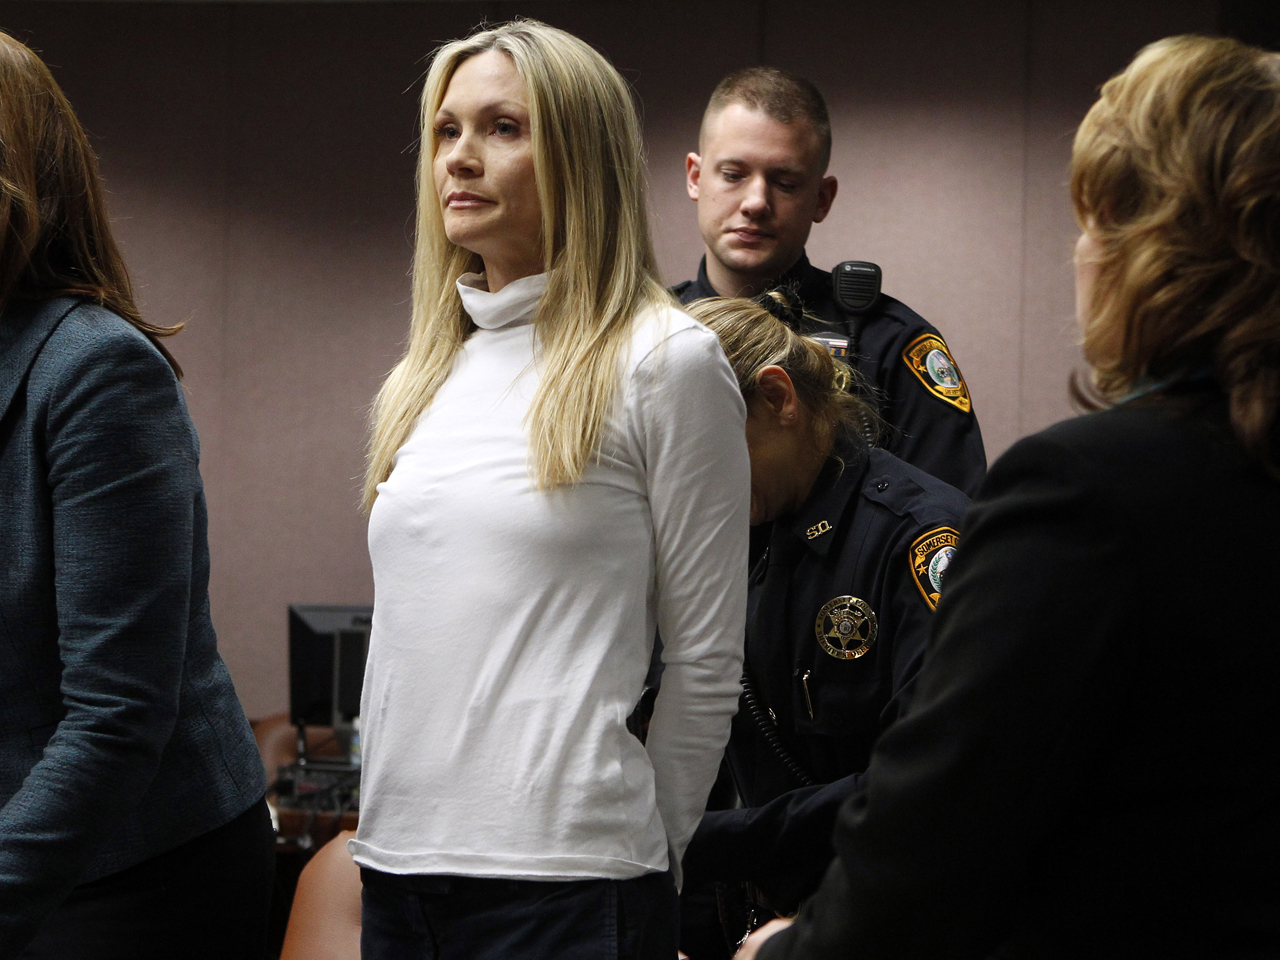 Amy Locane Melrose Place Pictures amy locane-bovenizer, ex-'melrose place' star, guilty of